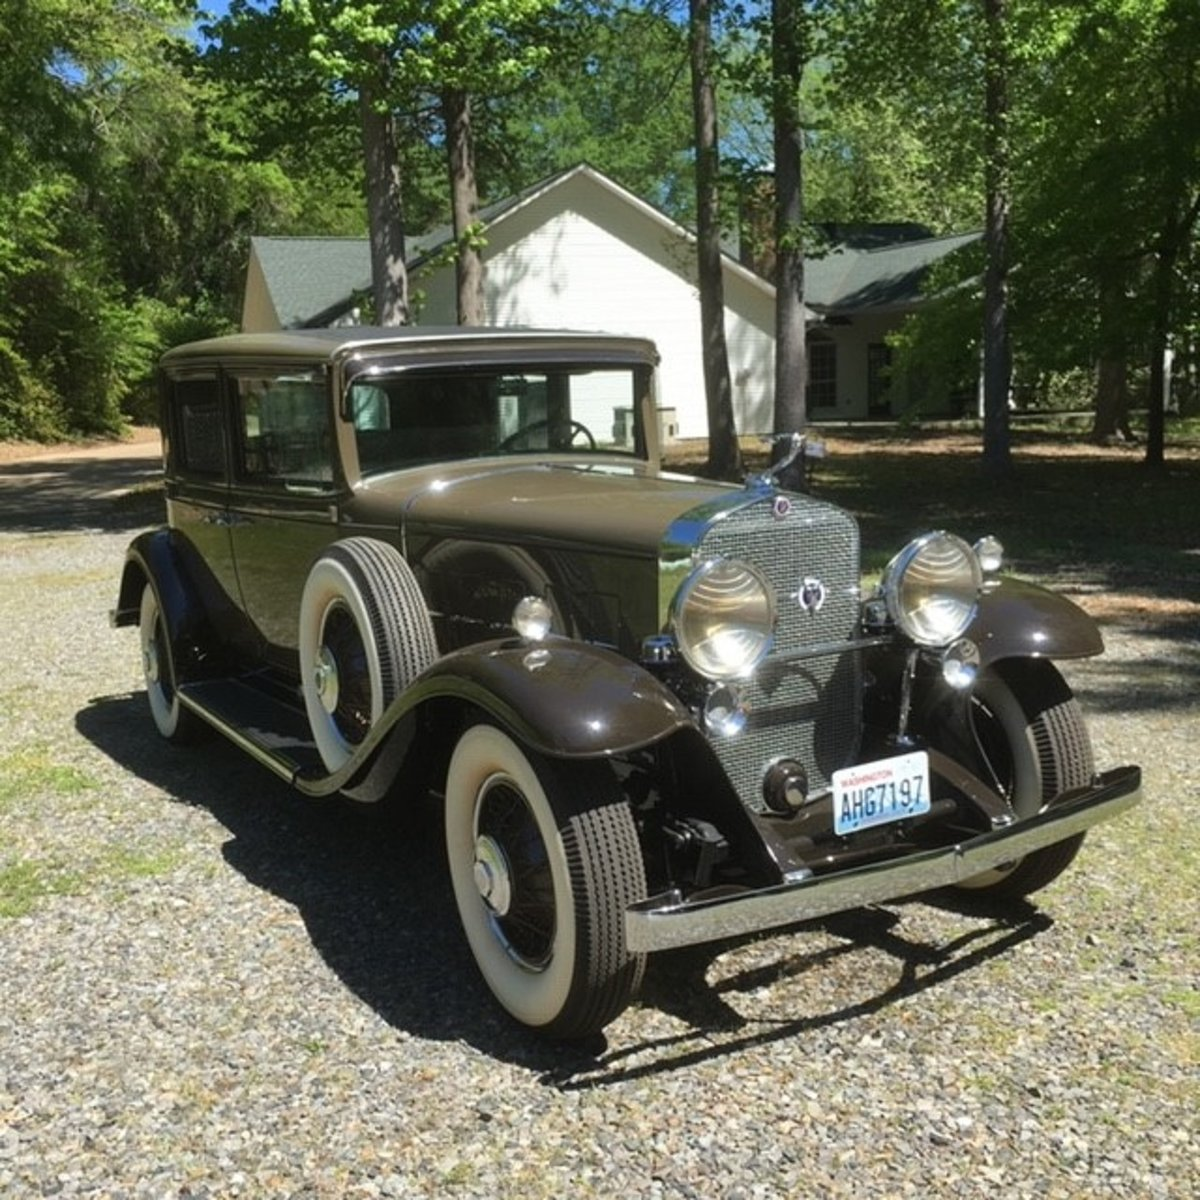 1931 Cadillac 370A 4DR Sedan For Sale (picture 3 of 6)